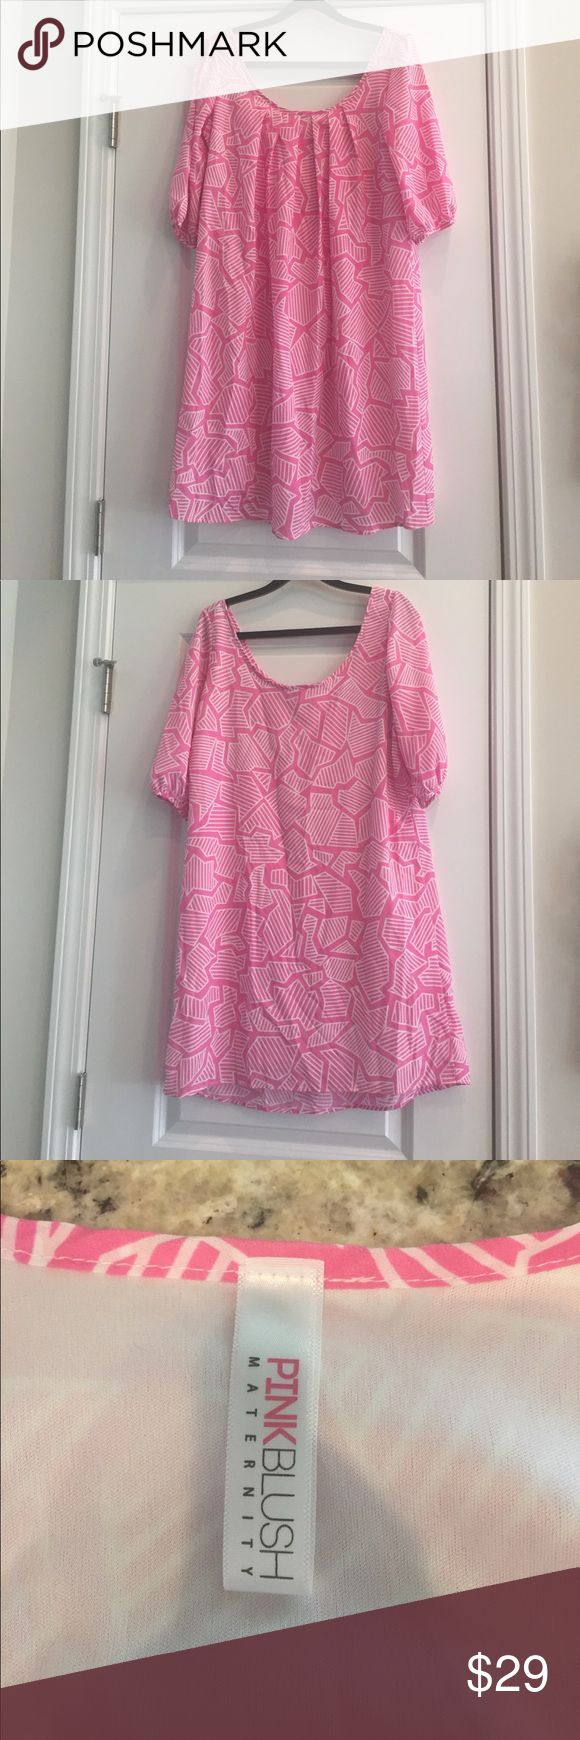 Maternity Dress Pink Blush Super cute! Use a thin belt to really accentuate your bump! Perfect for a baby shower! Pink Blush Dresses